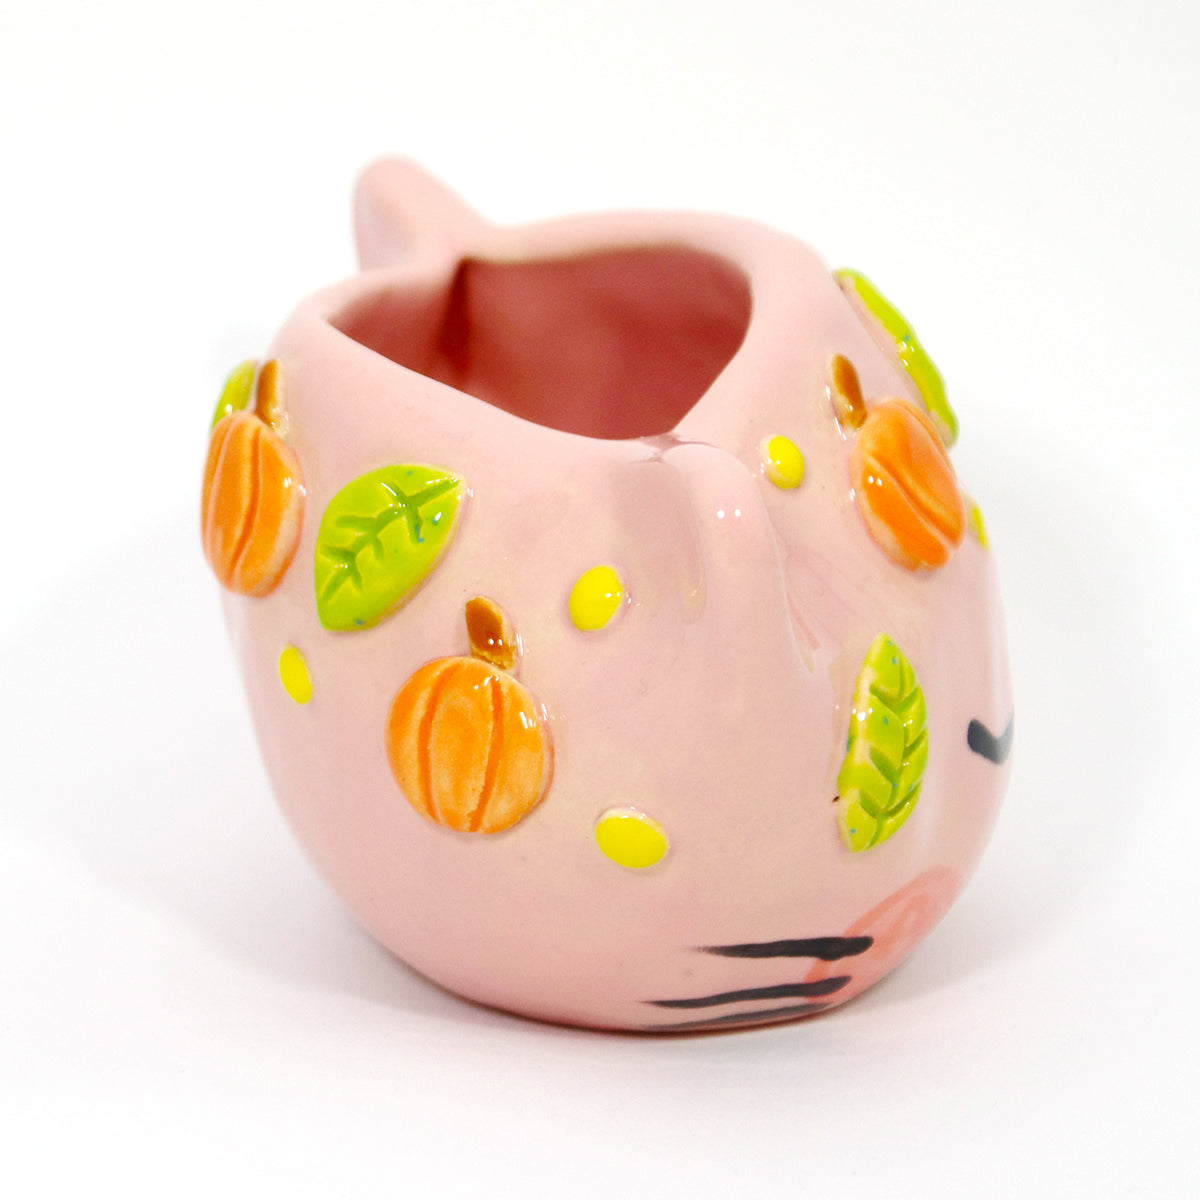 Ceramic Kitty Planter #1200 - S